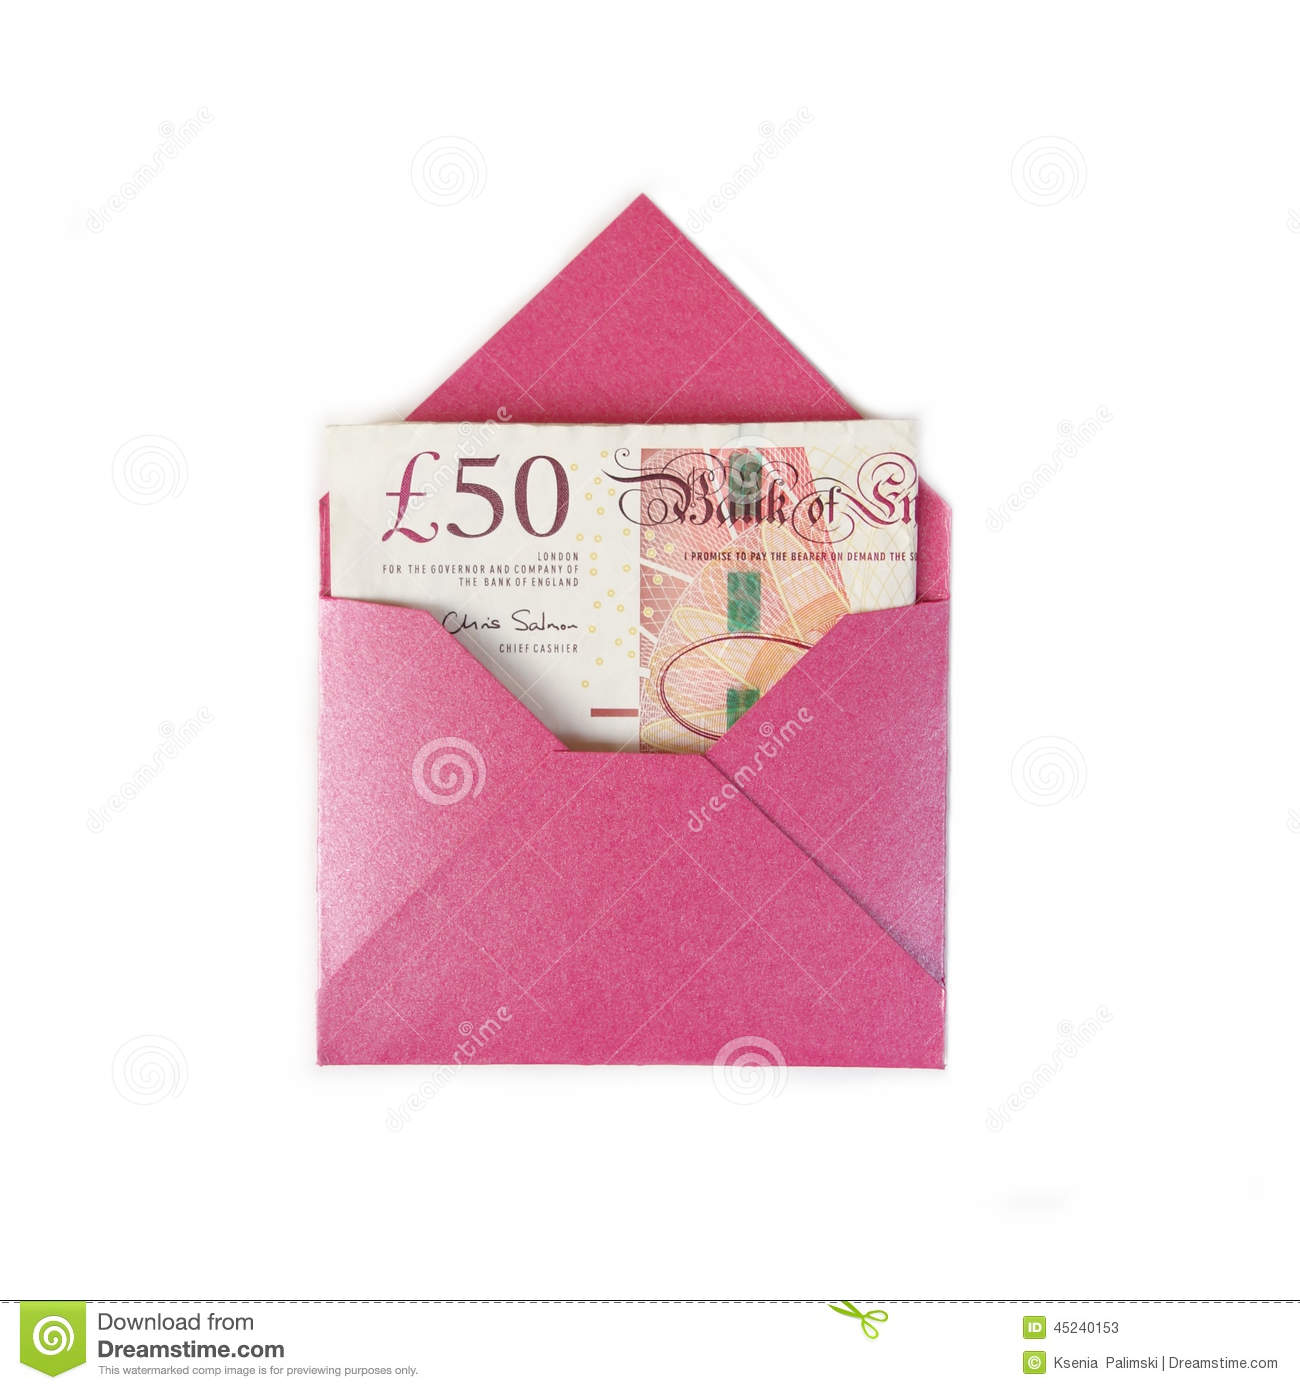 Envelope with 50 pounds